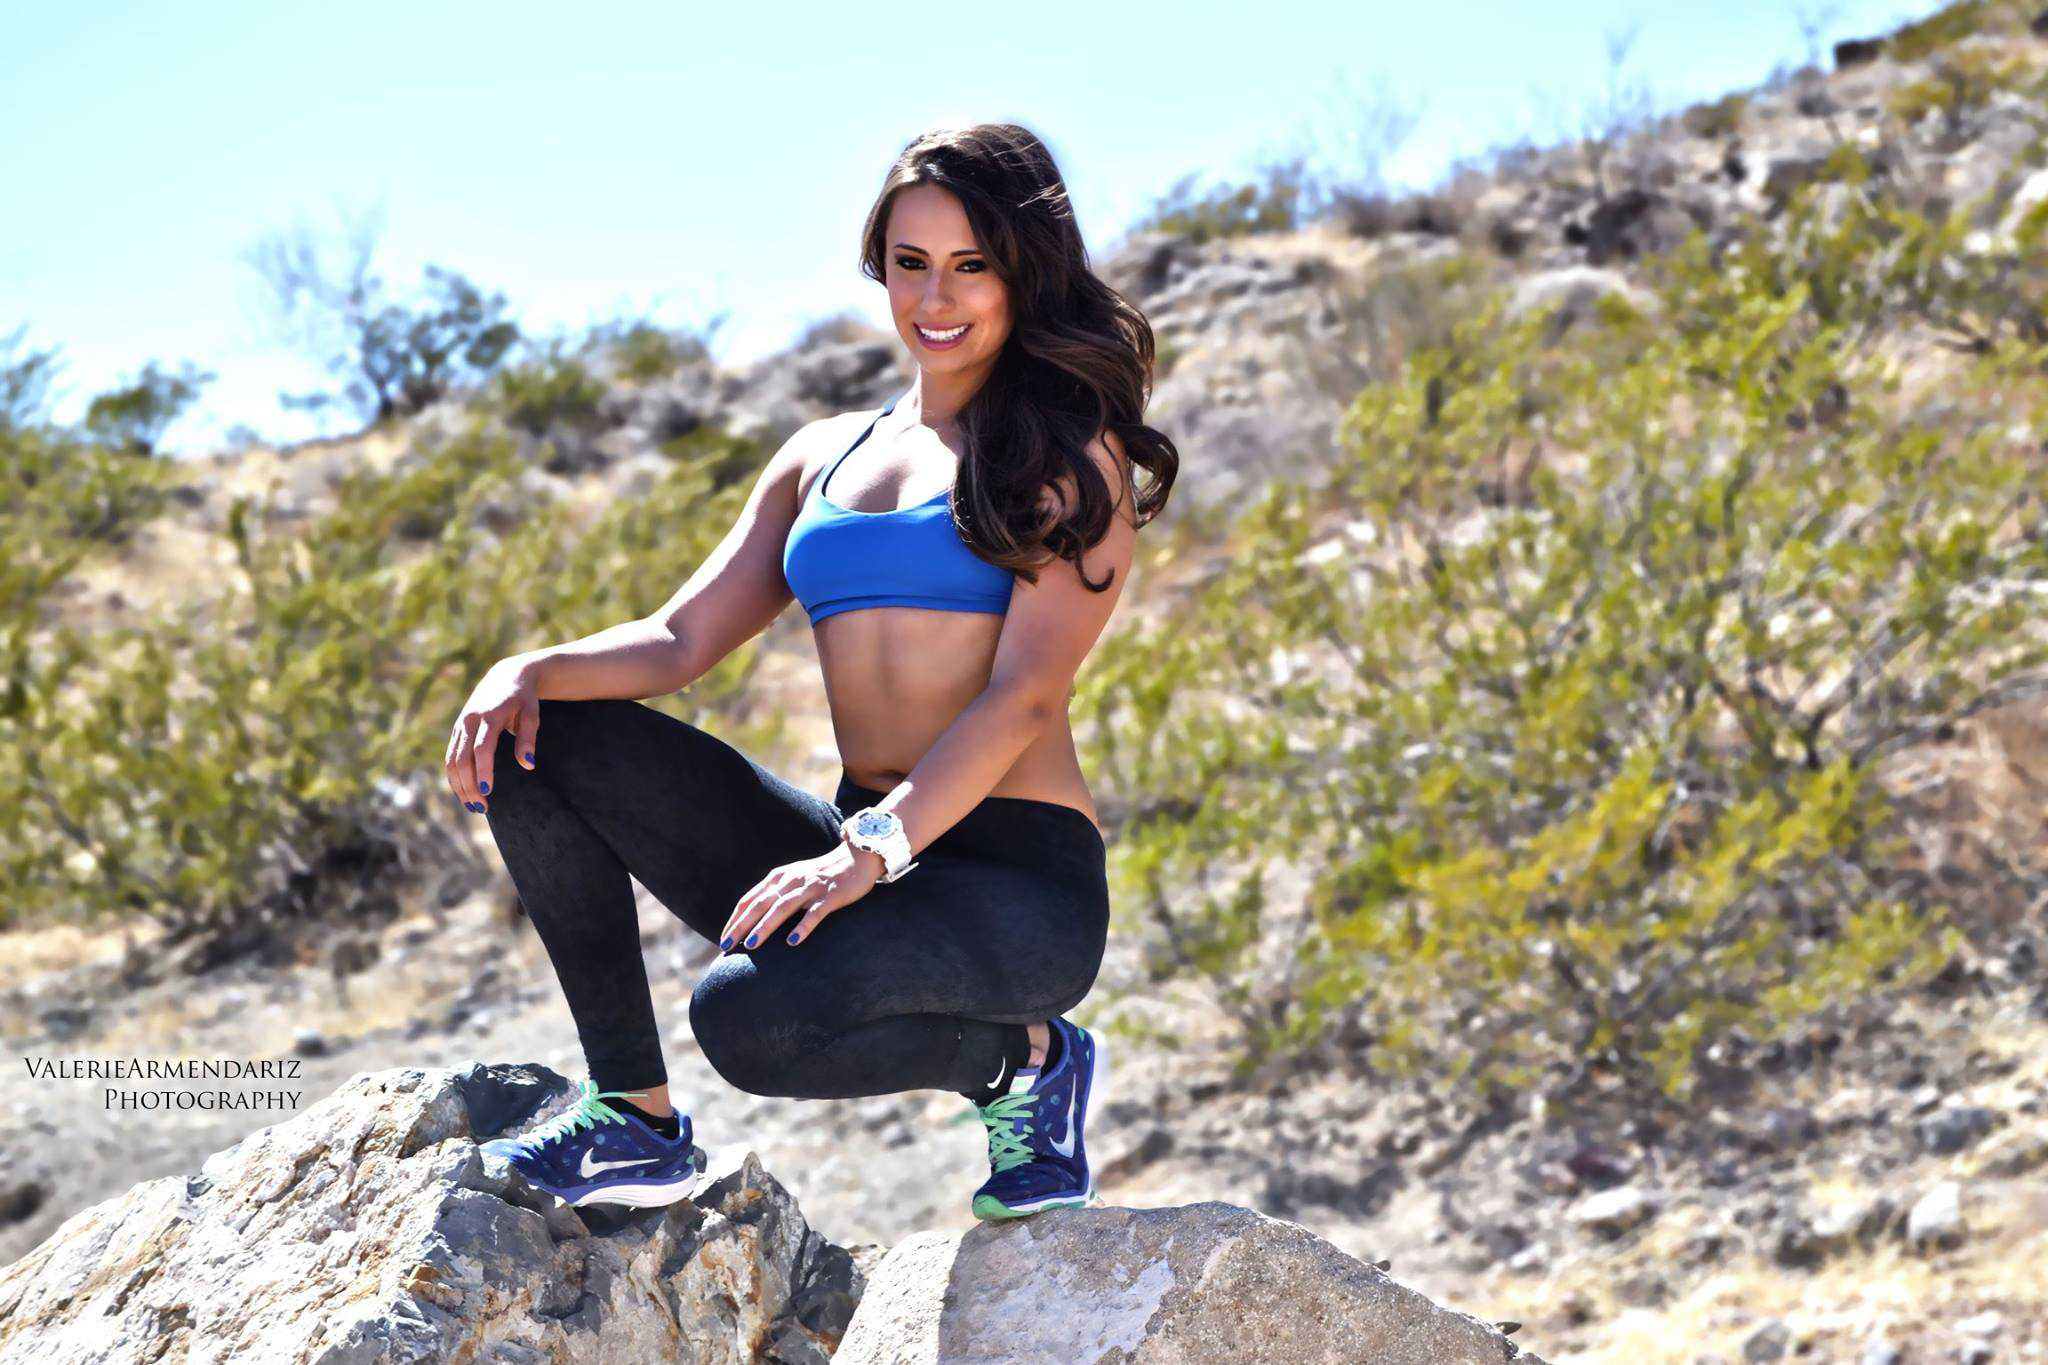 Kimberly Rayner is a personal trainer. She began two years ago and continues to help her clients reach healthy goals.